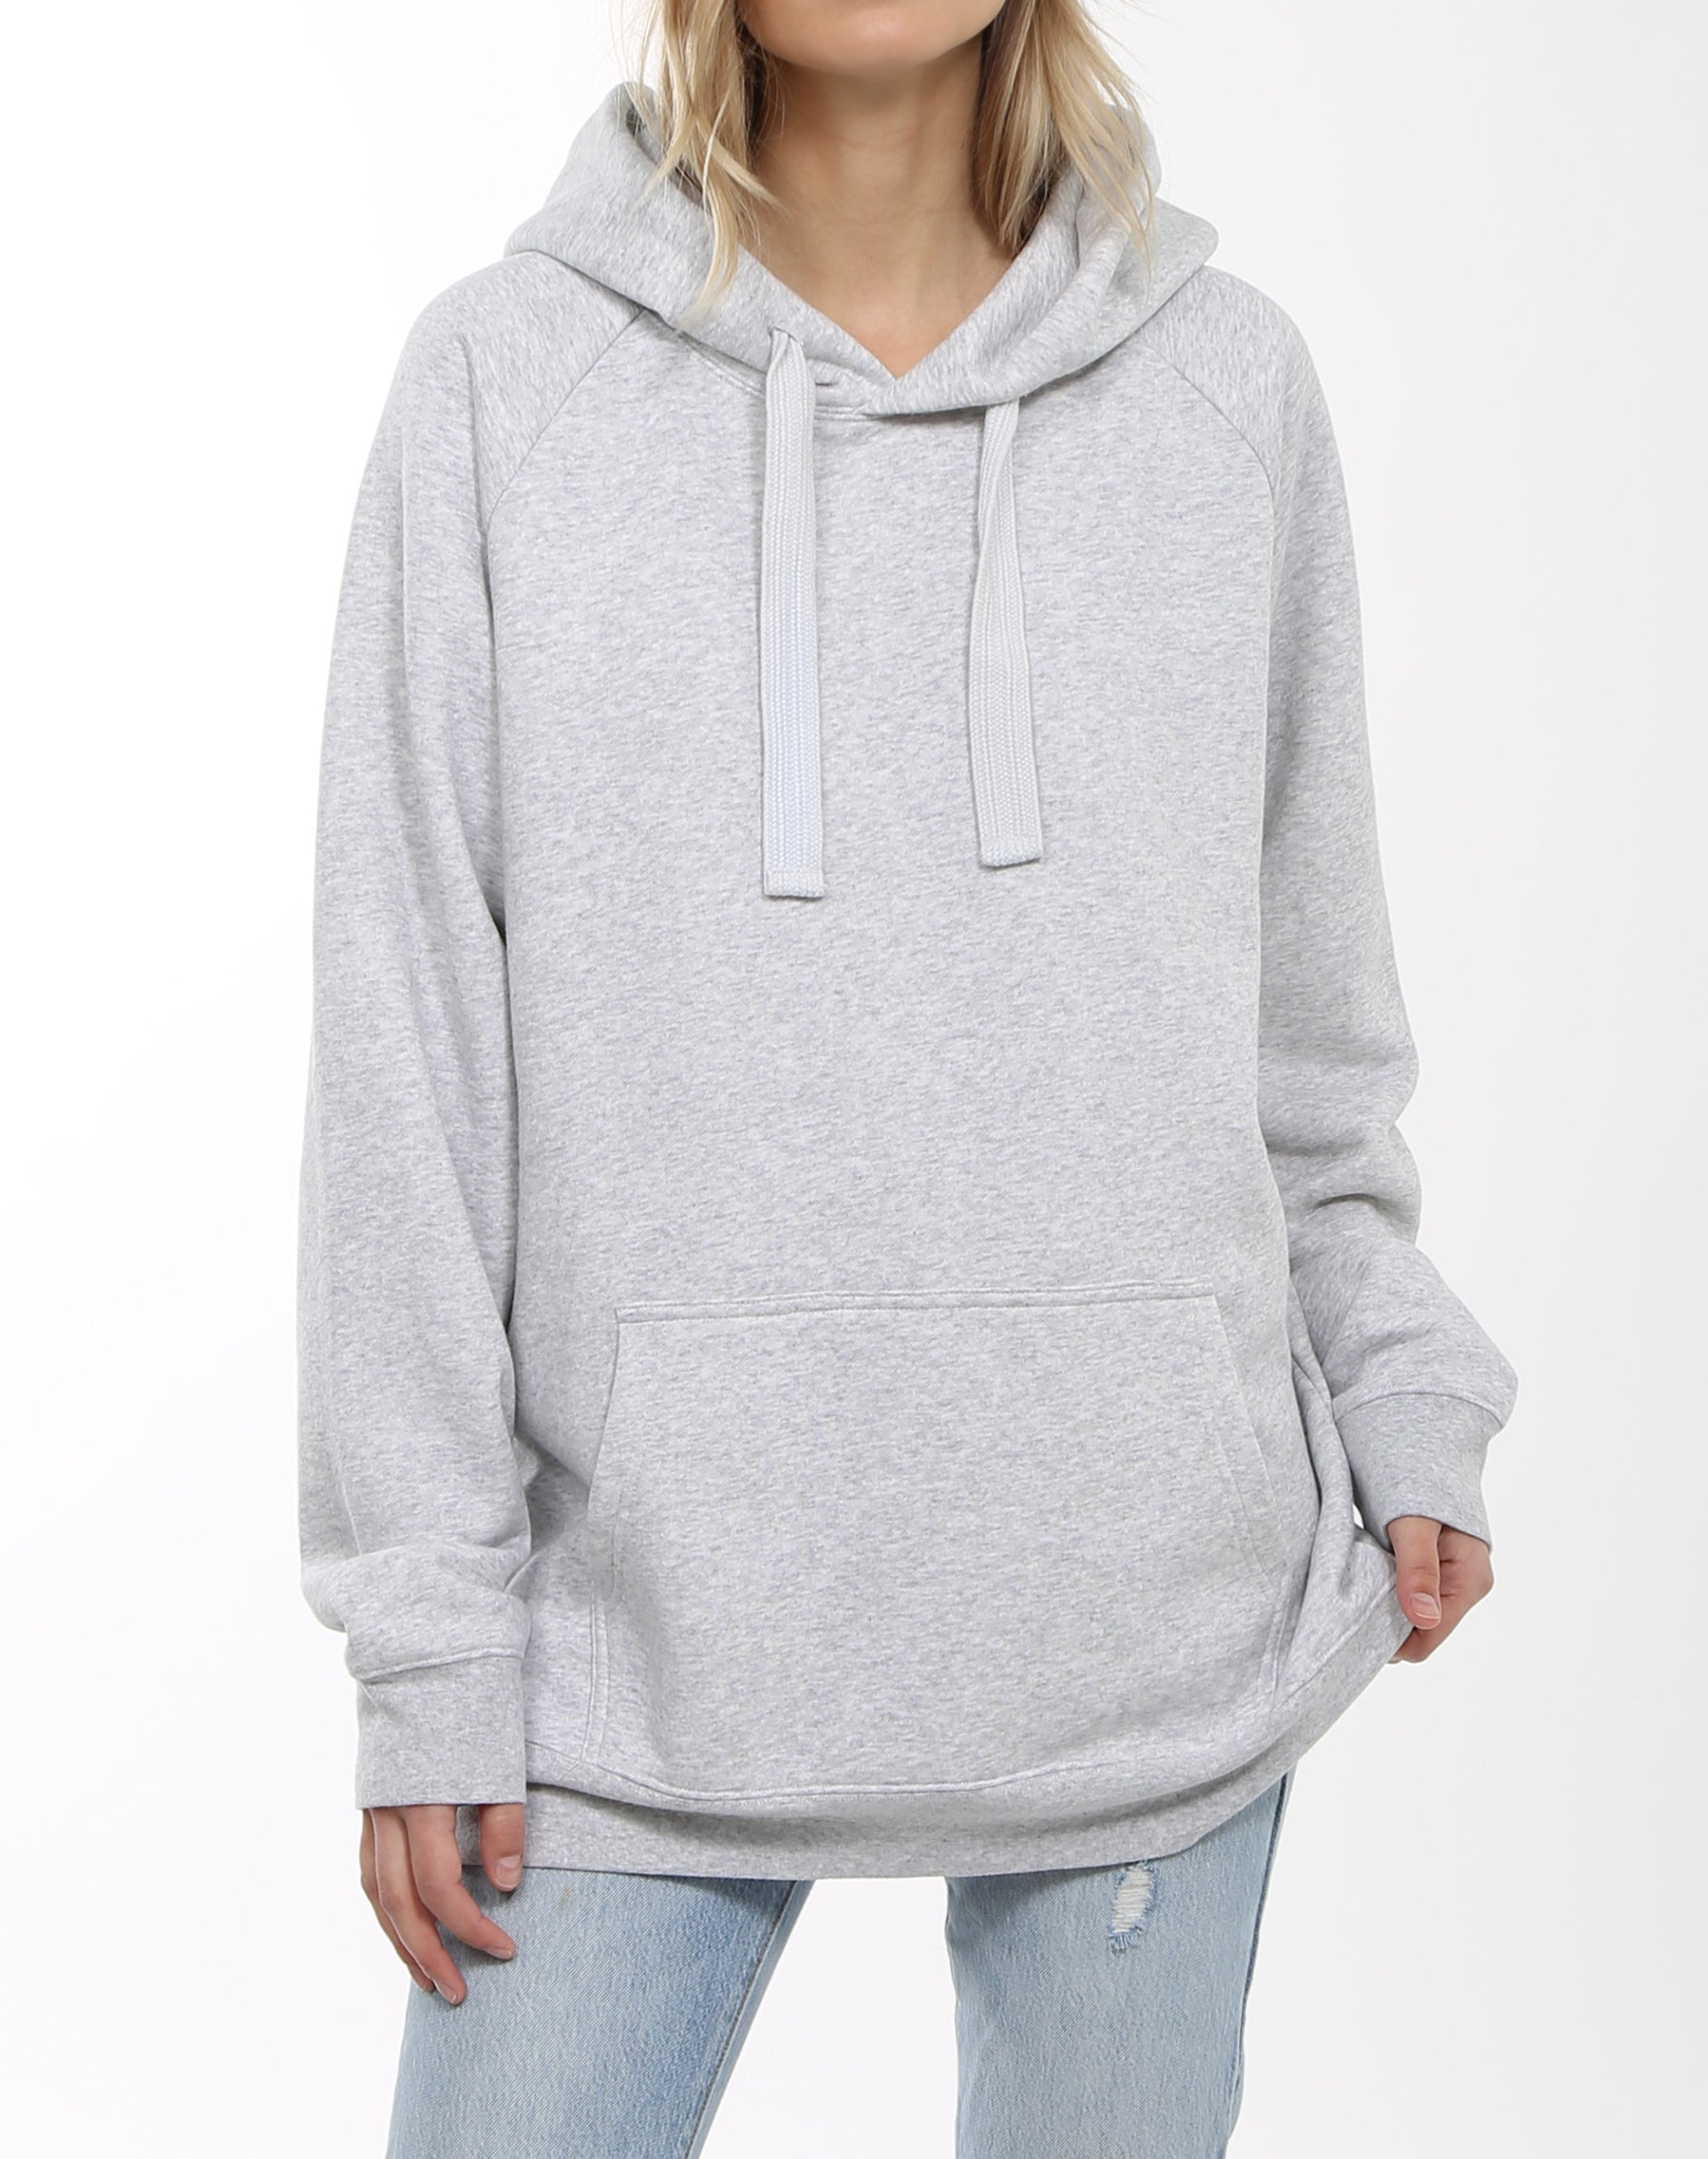 Photo 3 of the Babes Supporting Babes big sister hoodie in pebble grey by Brunette the Label.